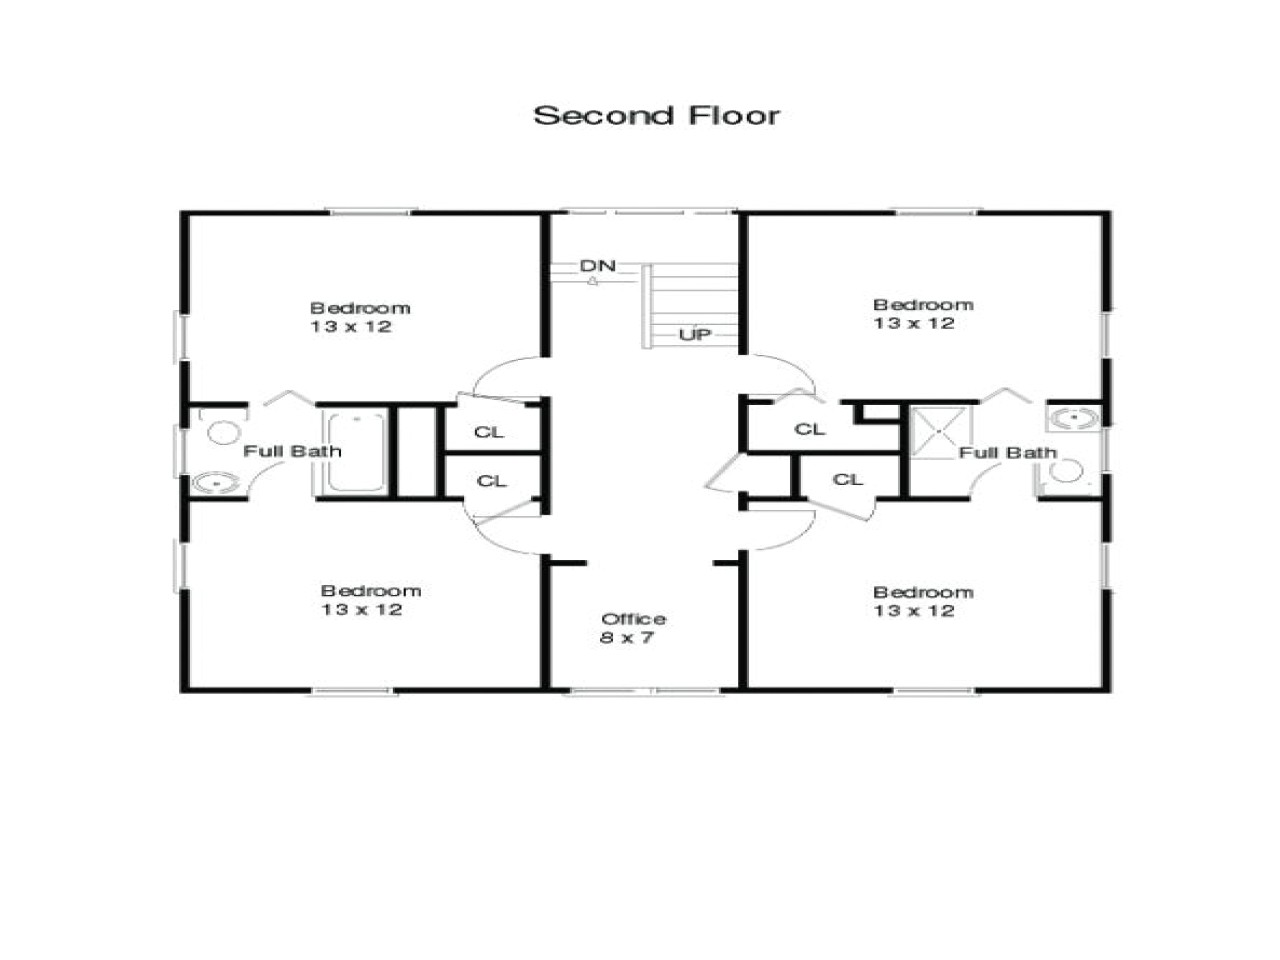 1319bdbc111fabf5 simple square house floor plans one story square house